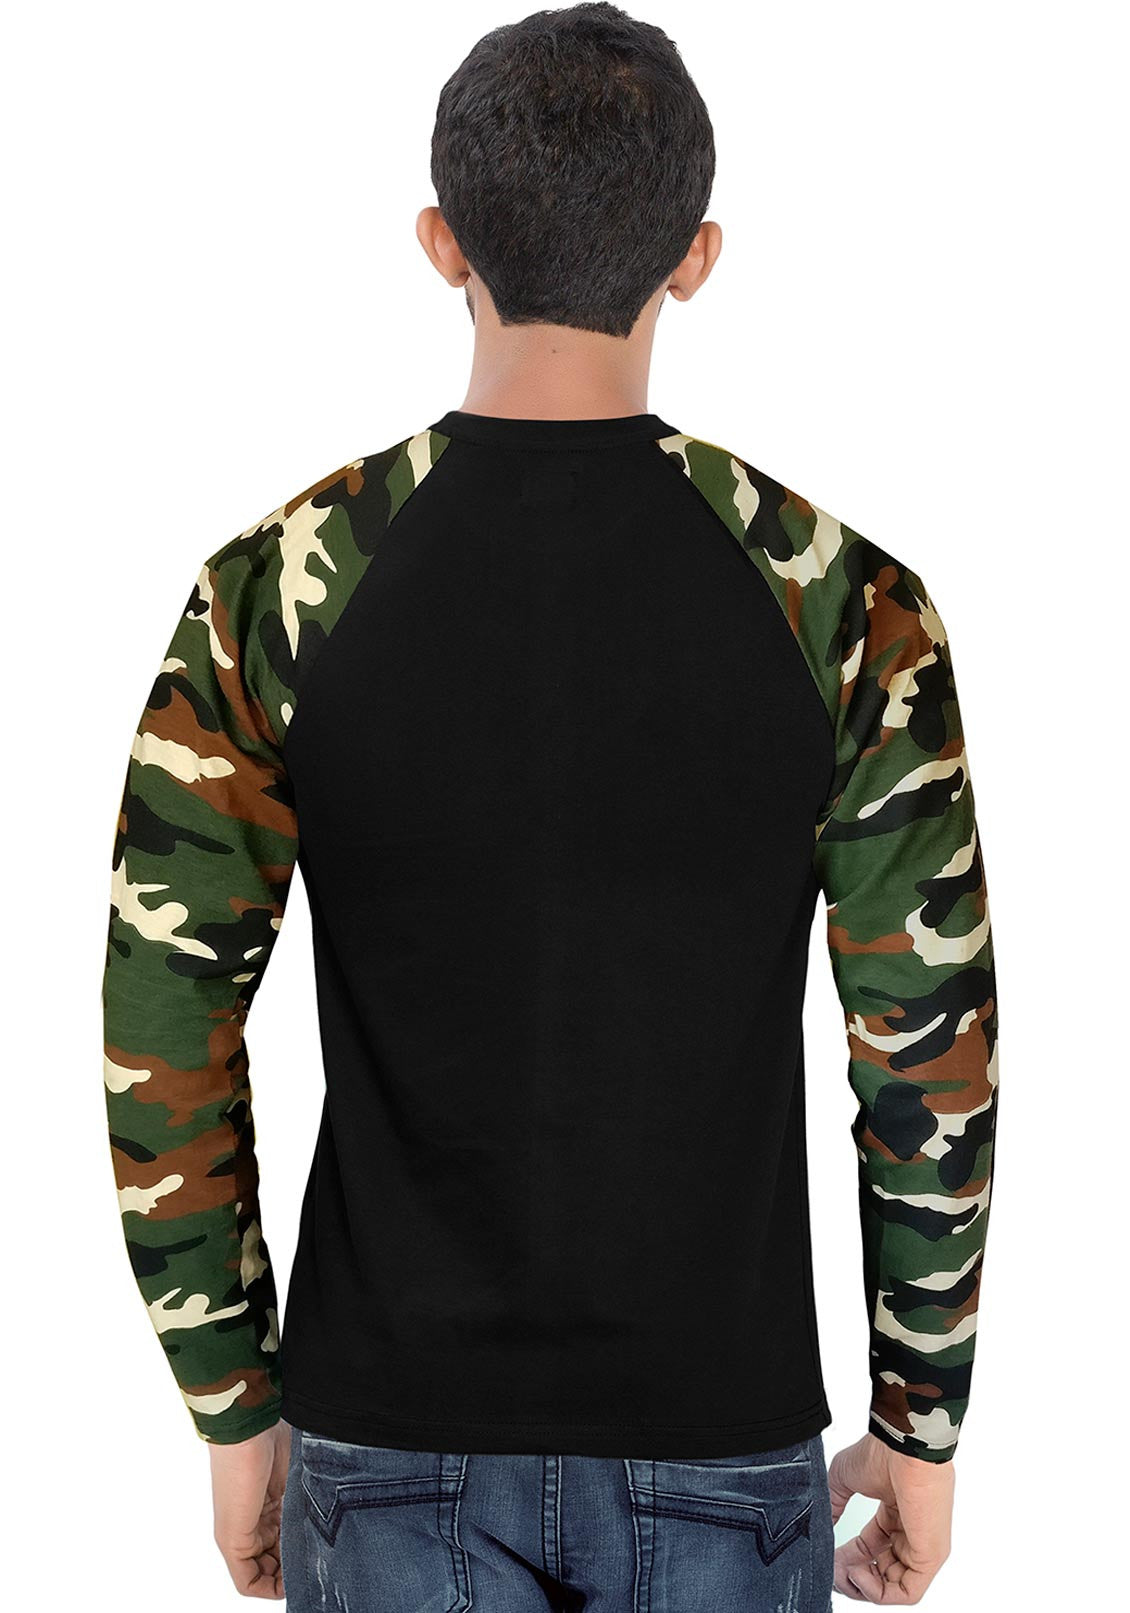 ... Men Brown Camouflage With Black Raglan Full Sleeve T-Shirt - Wear Your  Opinion - 389ccf21e15